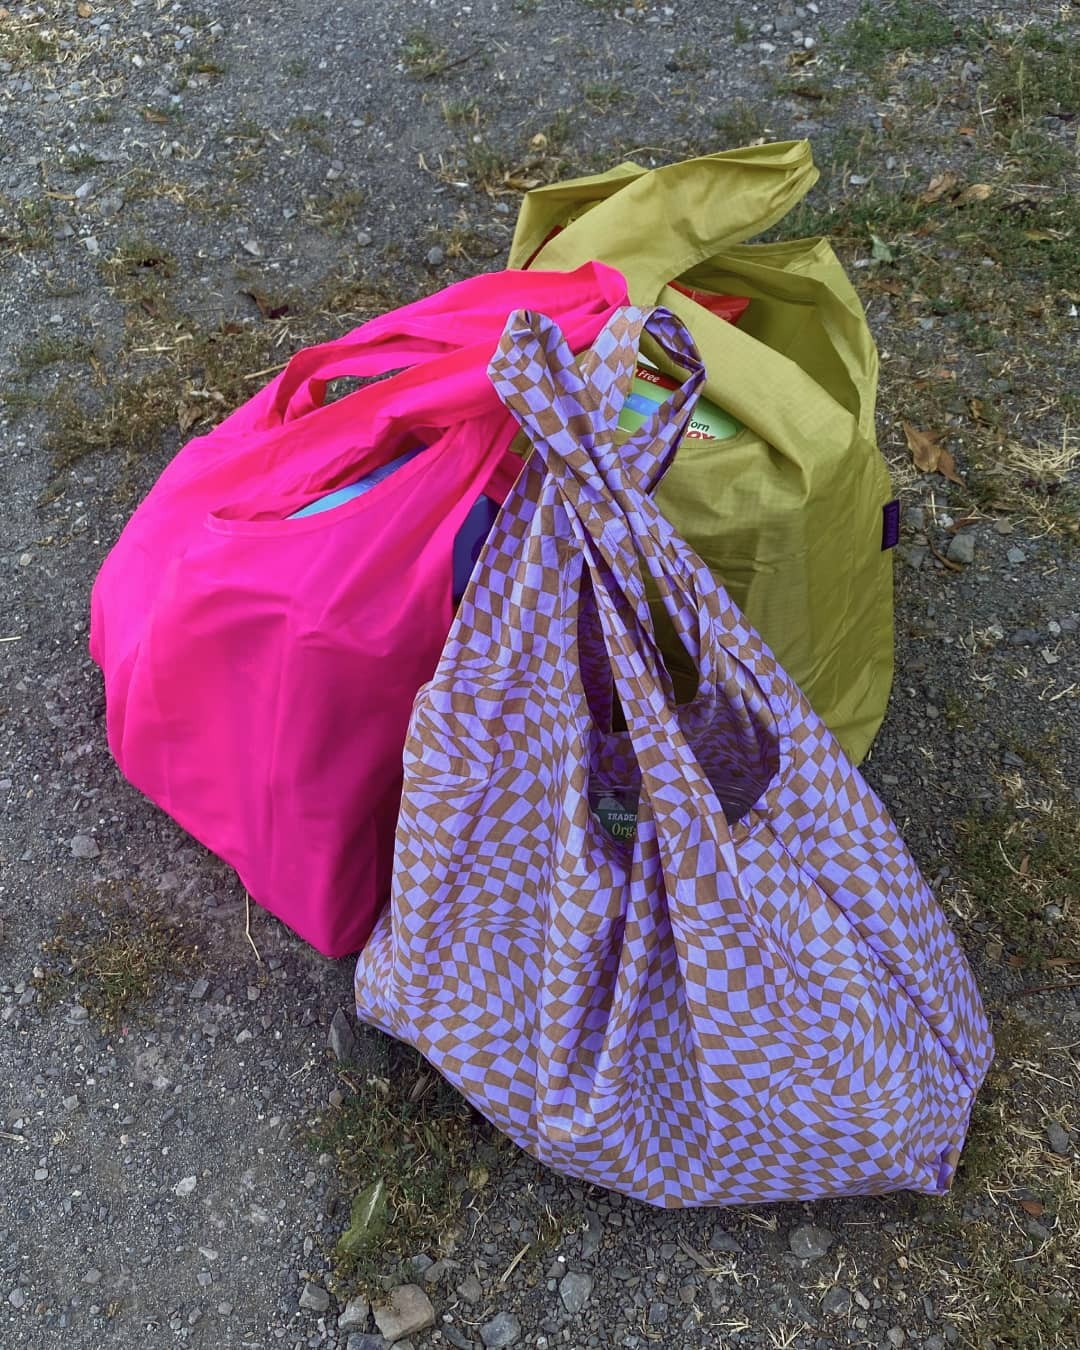 Three reusable bags placed on the ground